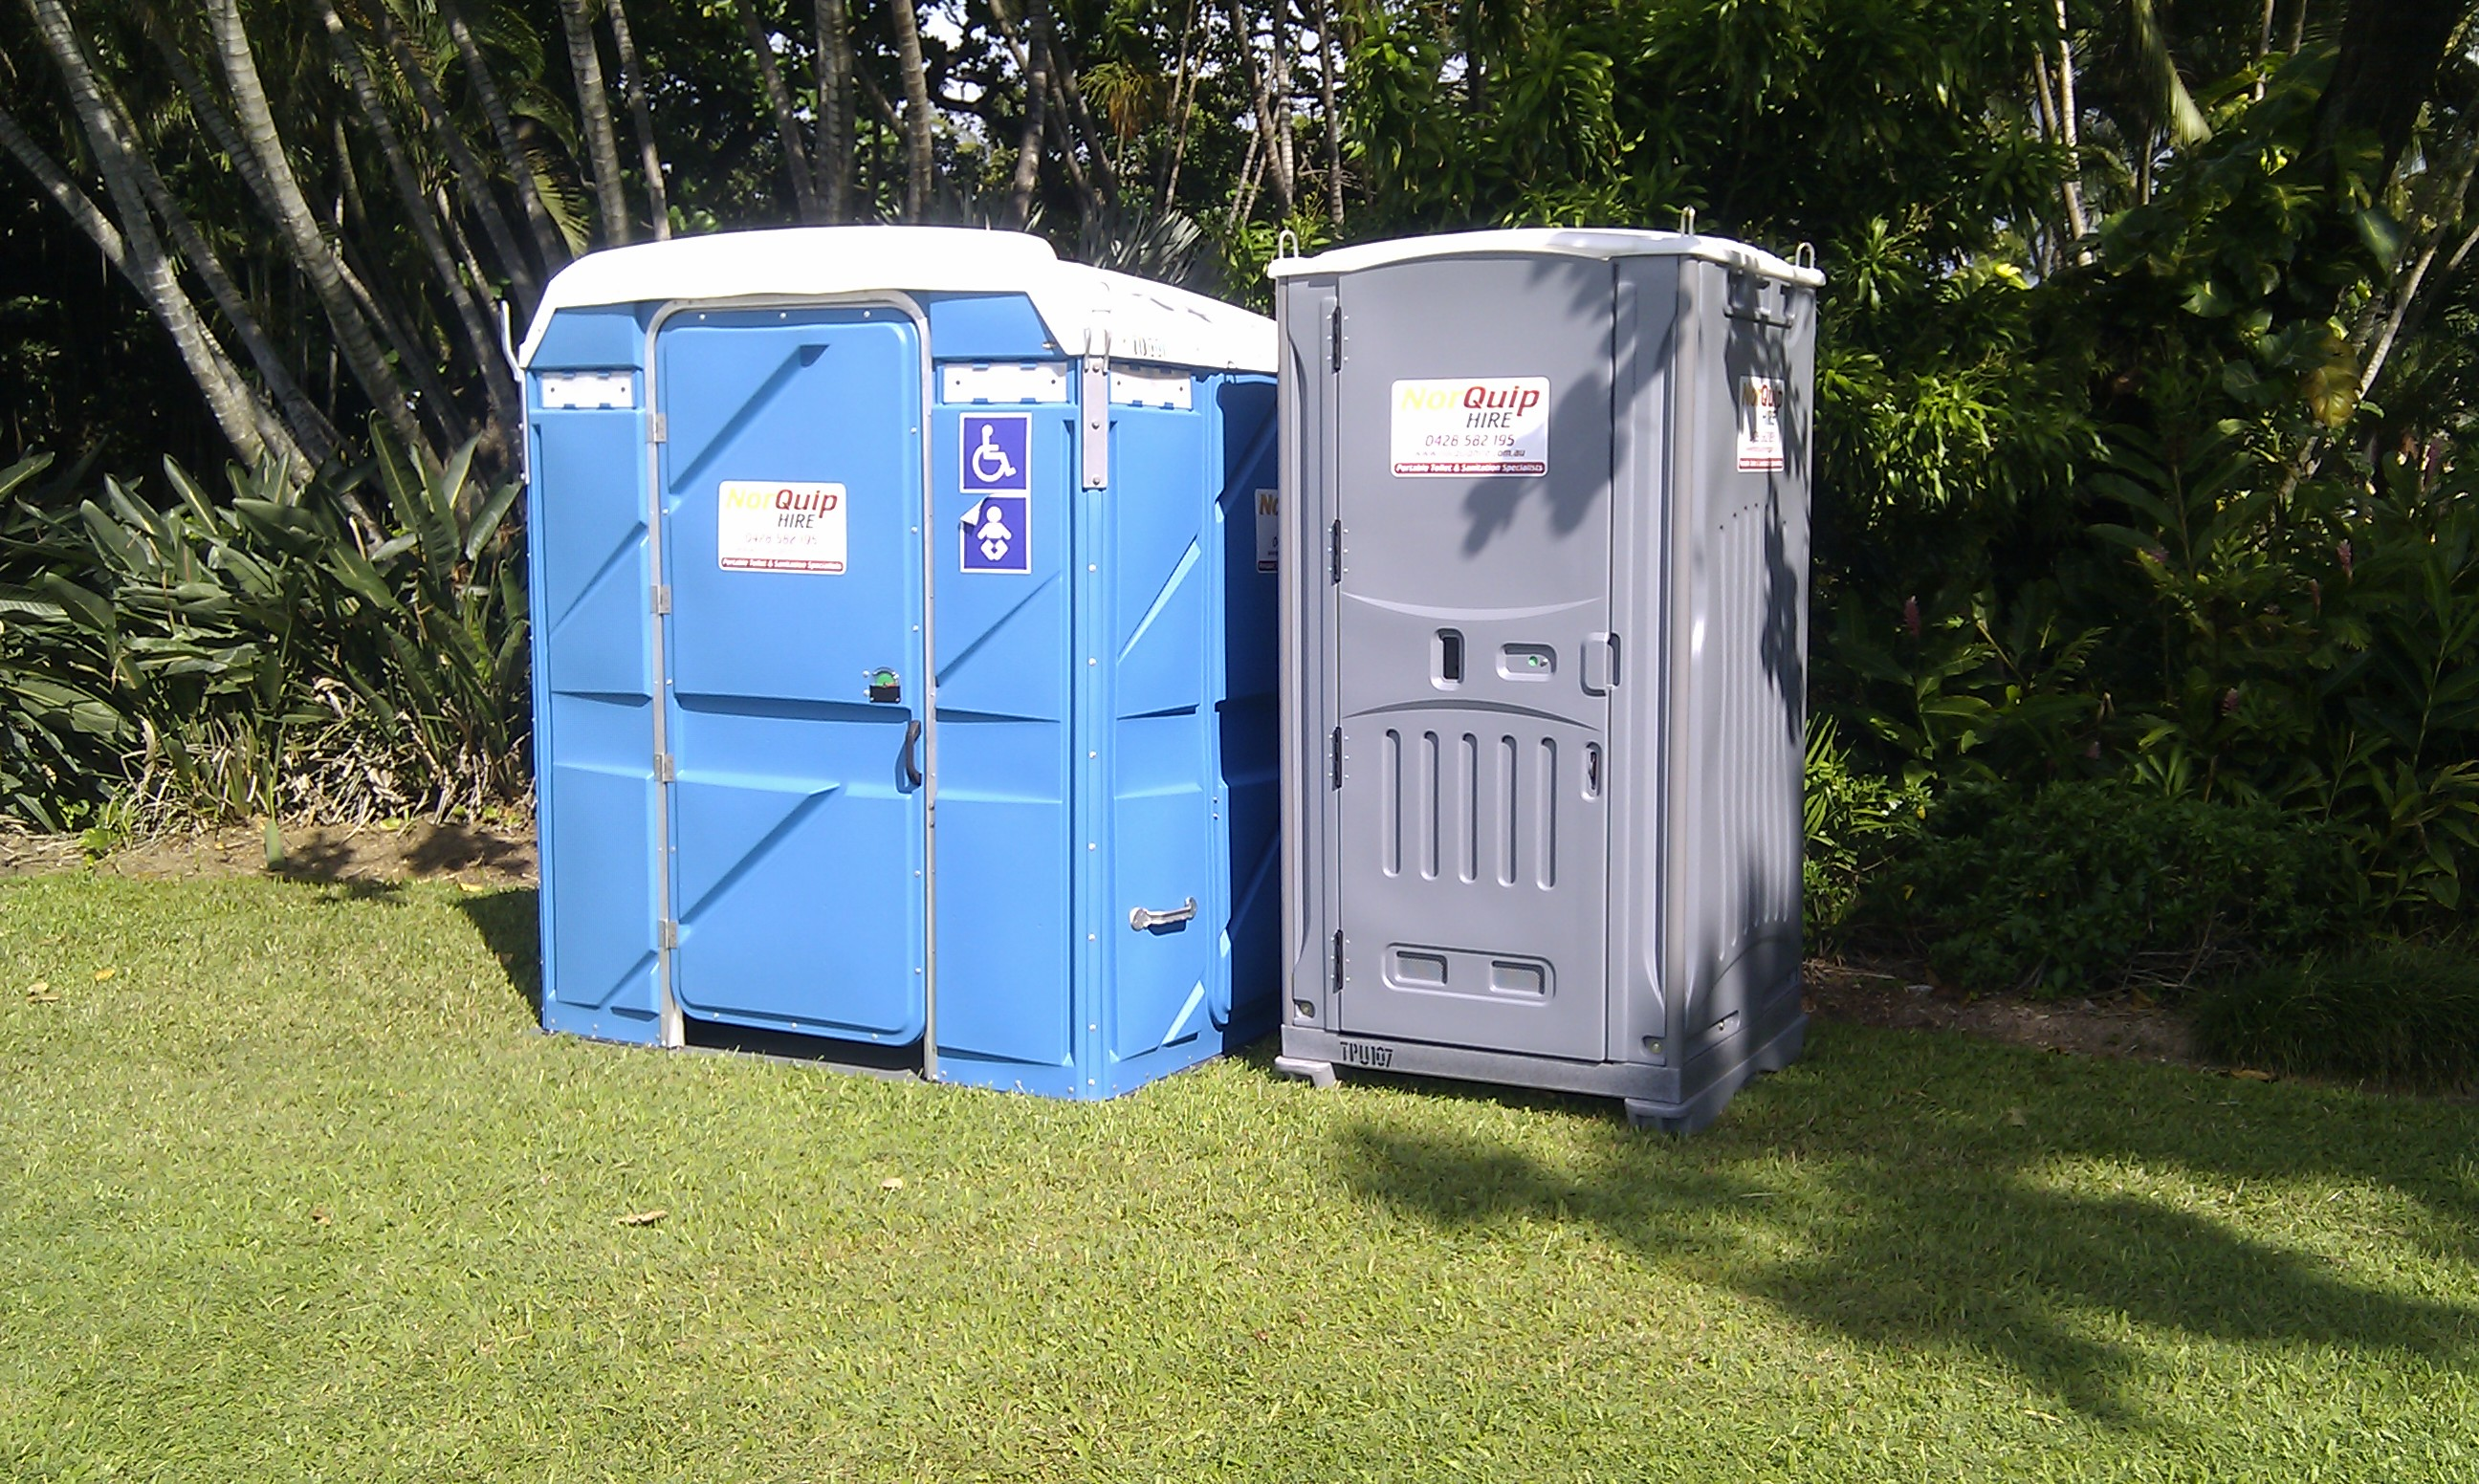 Event and deluxe portable toilets norquip hire for Deluxe portable bathrooms